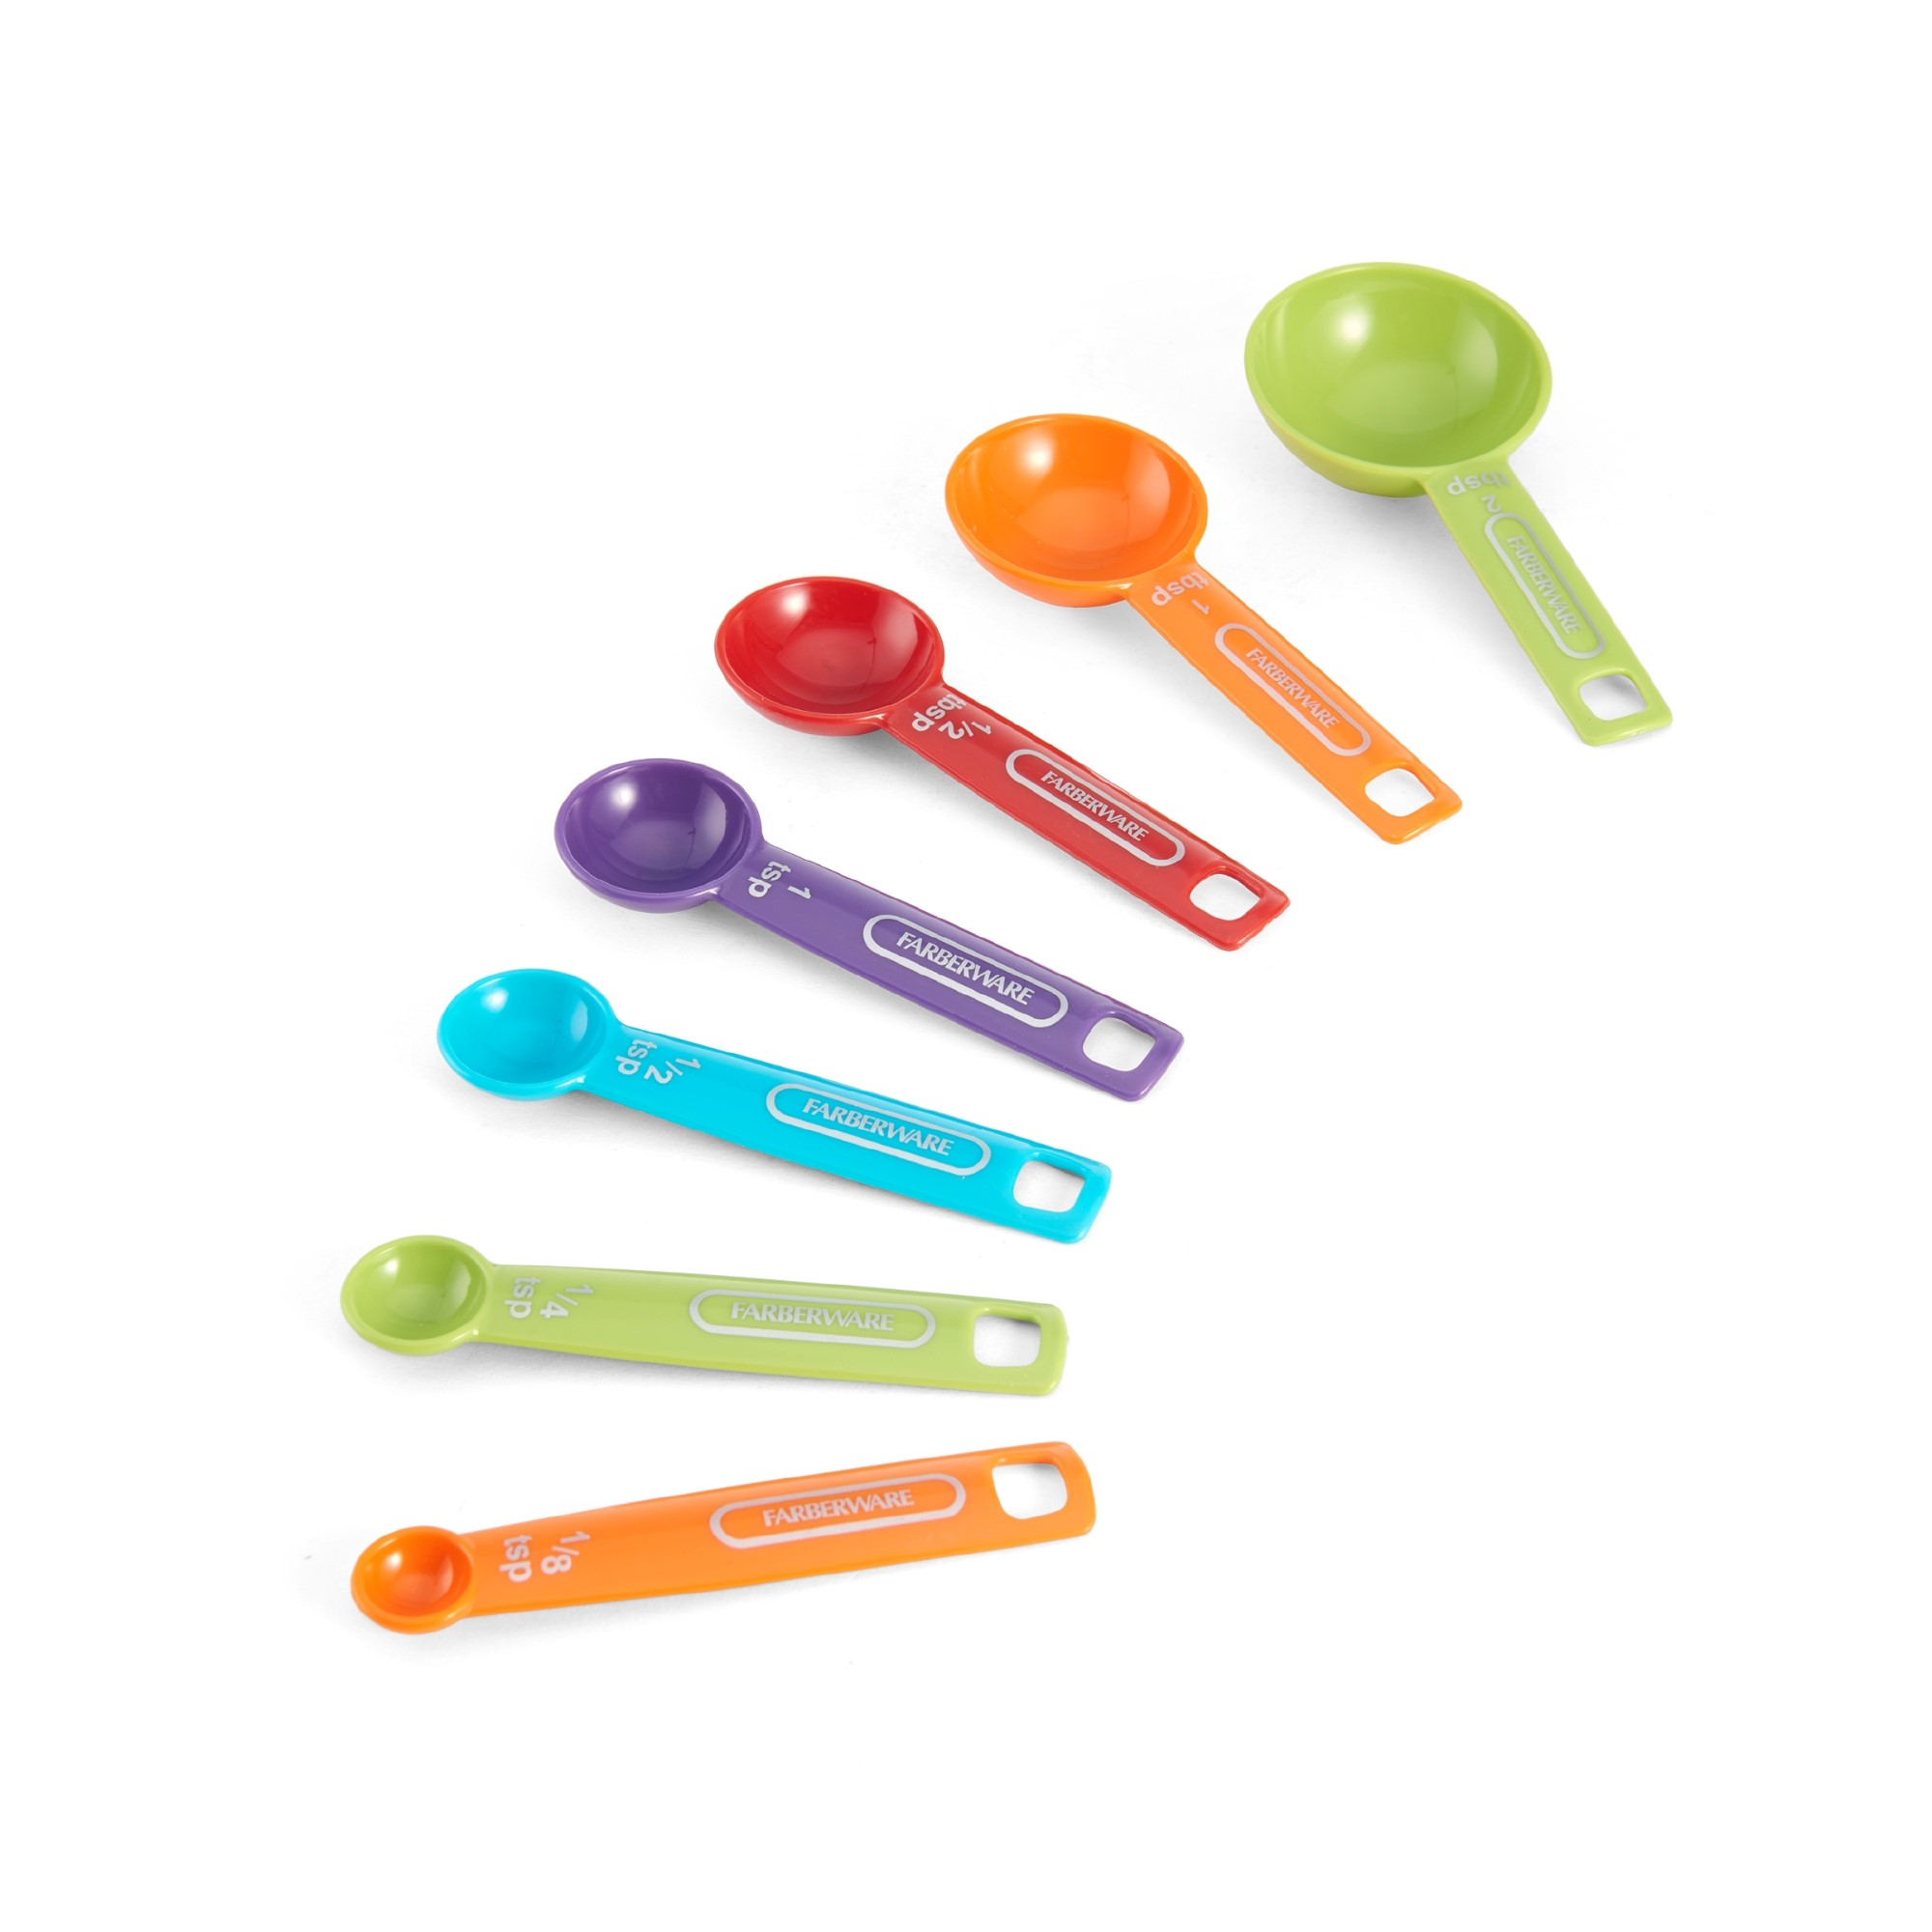 Farberware 7 Piece Measuring Spoon Set, Multi-Colored